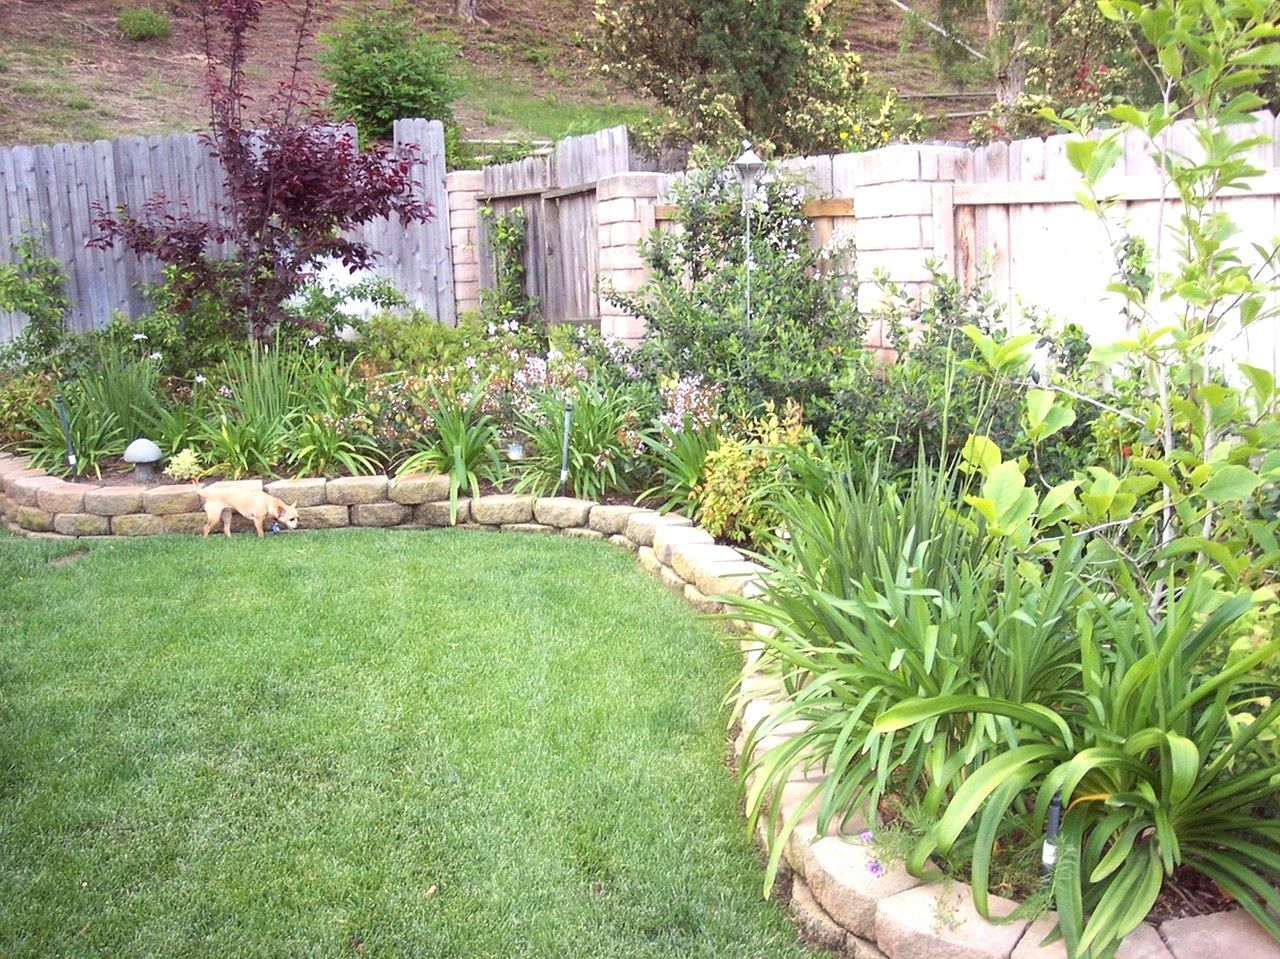 Garden inspiration nz small garden landscaping ideas nz for Garden landscape ideas nz